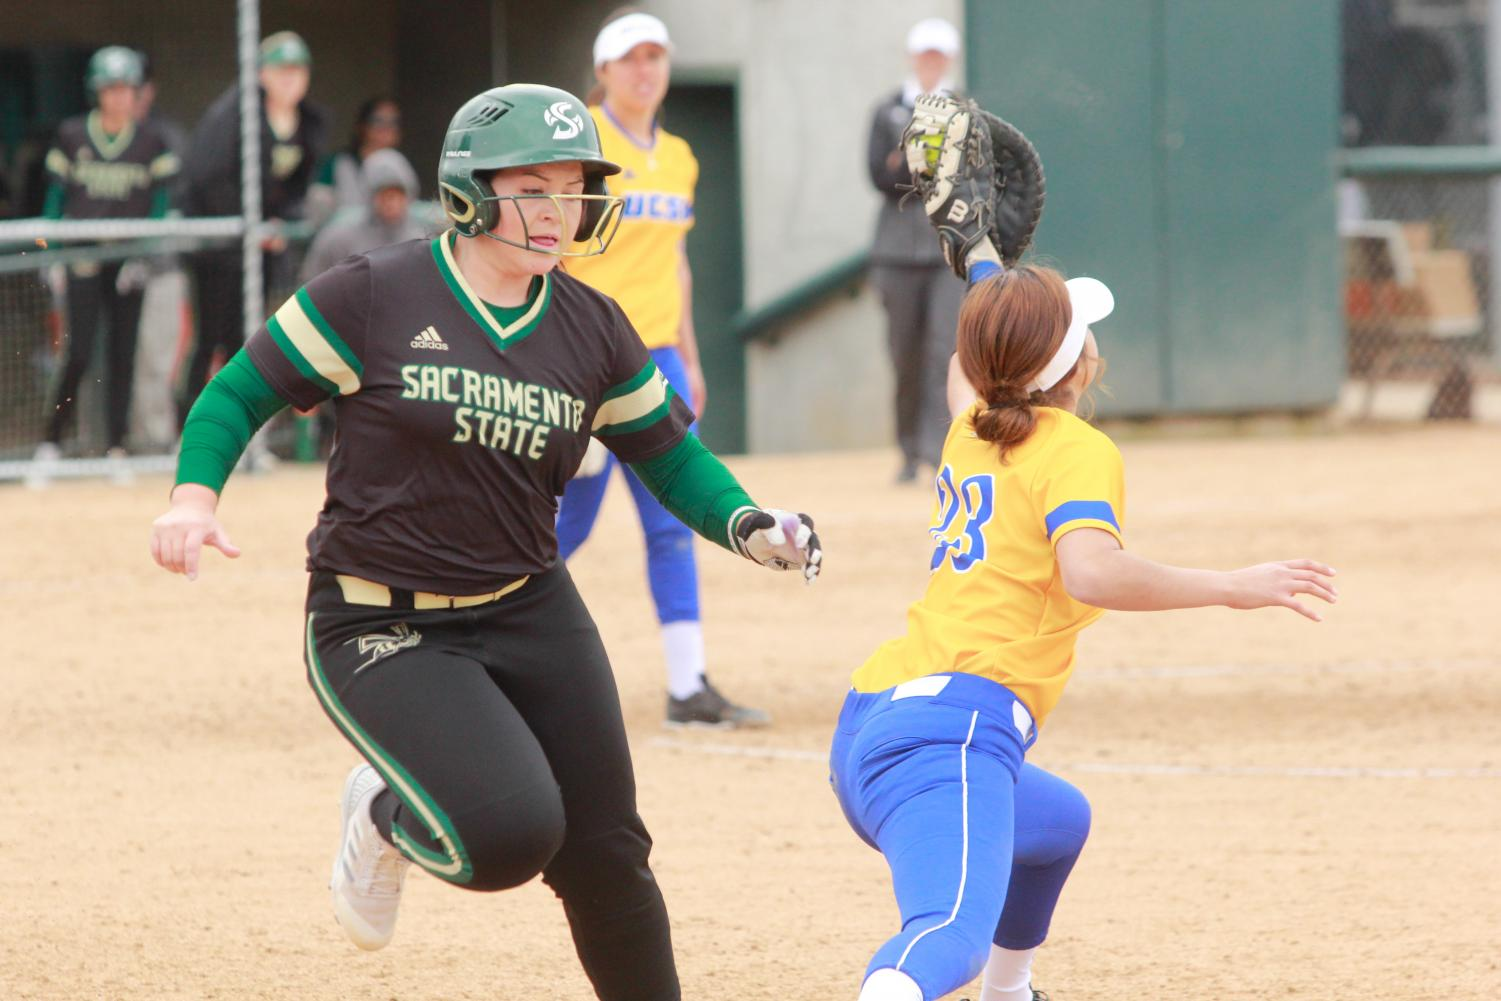 Sacramento State sophomore catcher Jessica Scott is thrown out at first base on a double play against UC Santa Barbara Saturday, Feb 10 at Shea Stadium. The Hornets lost to the Gauchos 8-4.